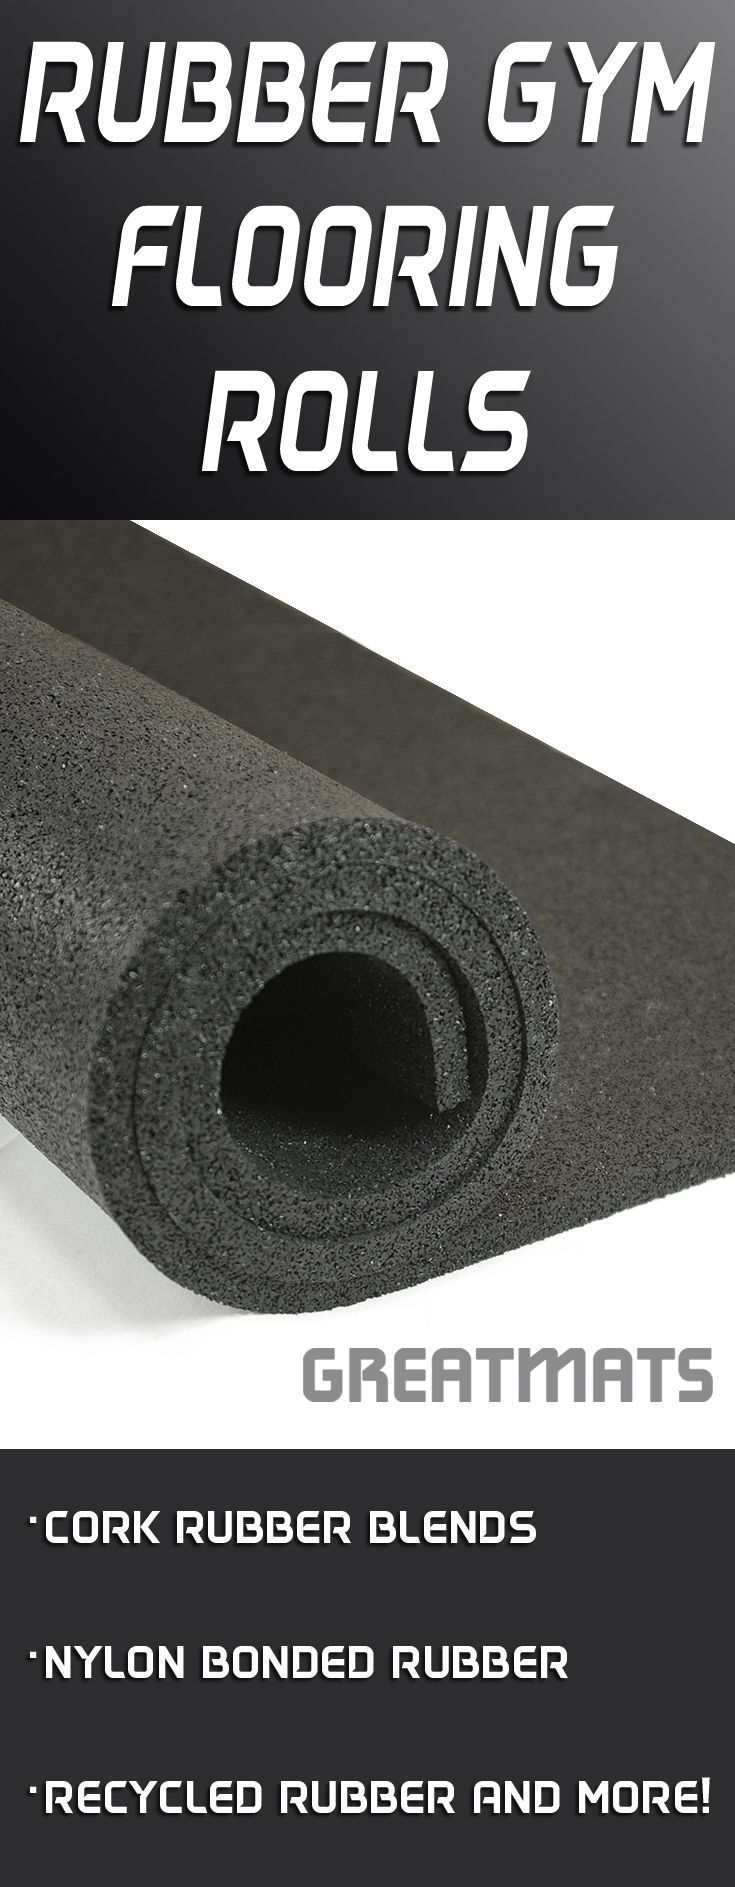 Greatmats has a huge selection of rubber gym flooring